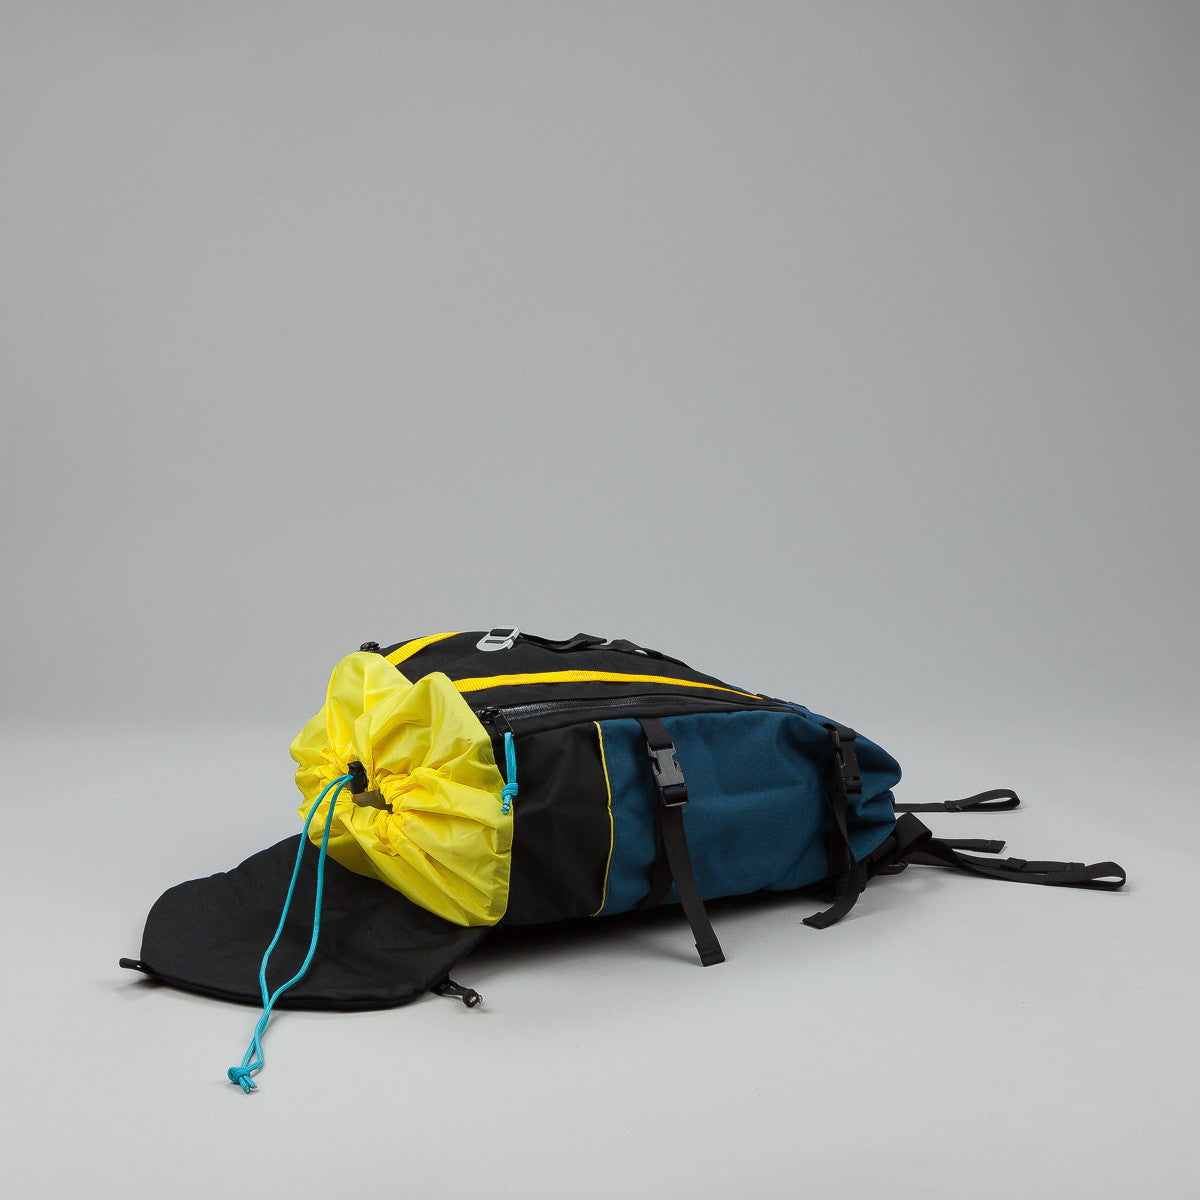 Topo Designs Mountain Pack - Navy / Black